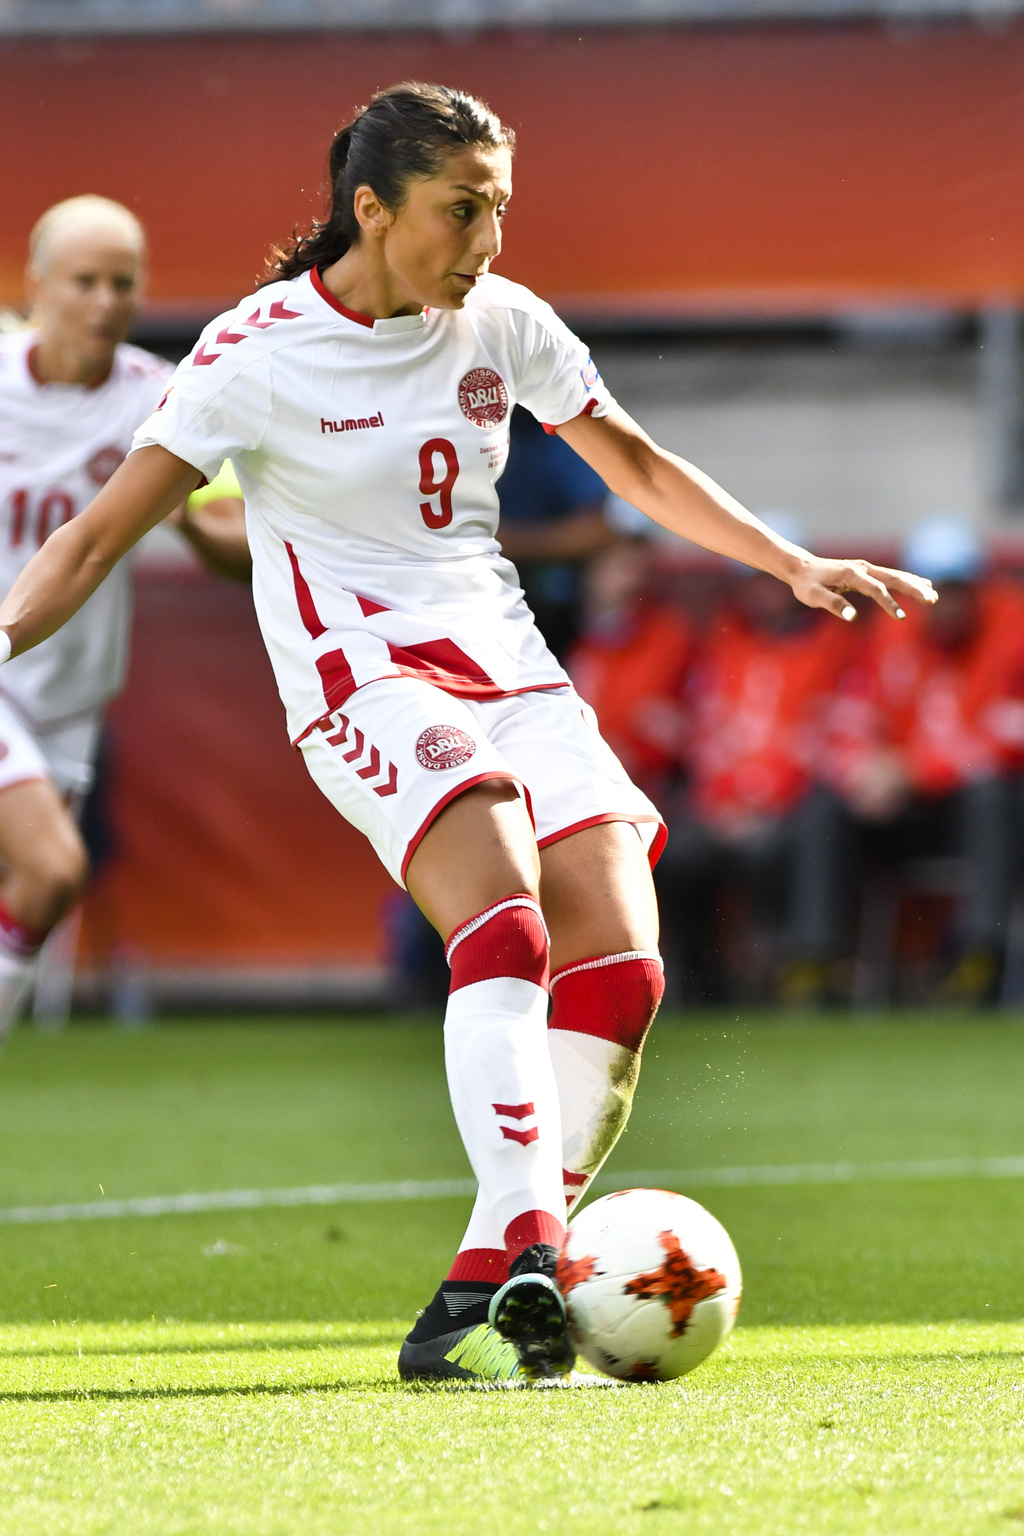 Denmark's Nadia Nadim kicks a penalty during the Women's Euro 2017 final soccer match between Netherlands and Denmark in Enschede, the Netherlands, Su...